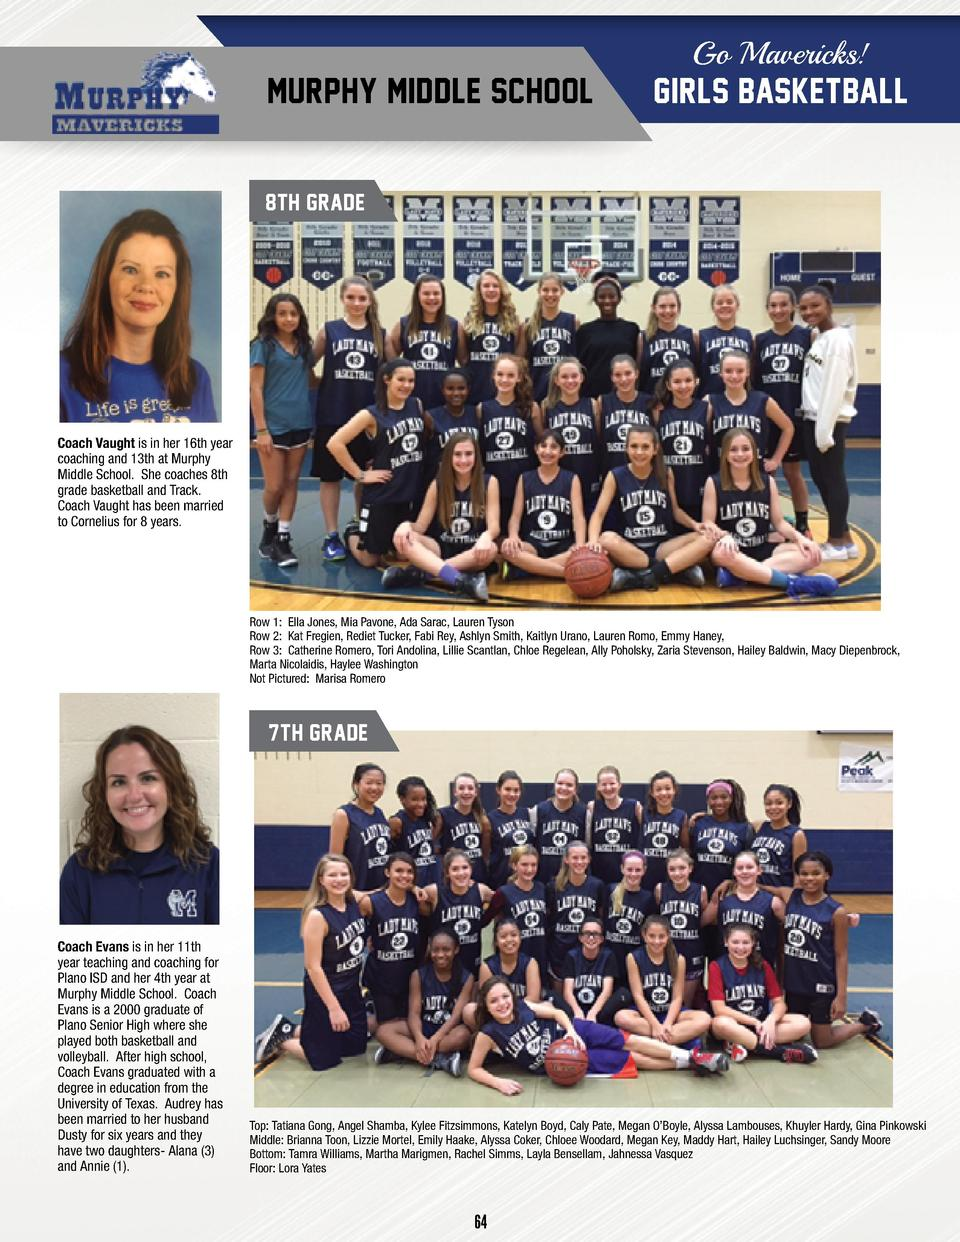 Go Mavericks   MURPHY MIDDLE SCHOOL  GIRLS BASKETBALL  8TH GRADE  Coach Vaught is in her 16th year coaching and 13th at Mu...